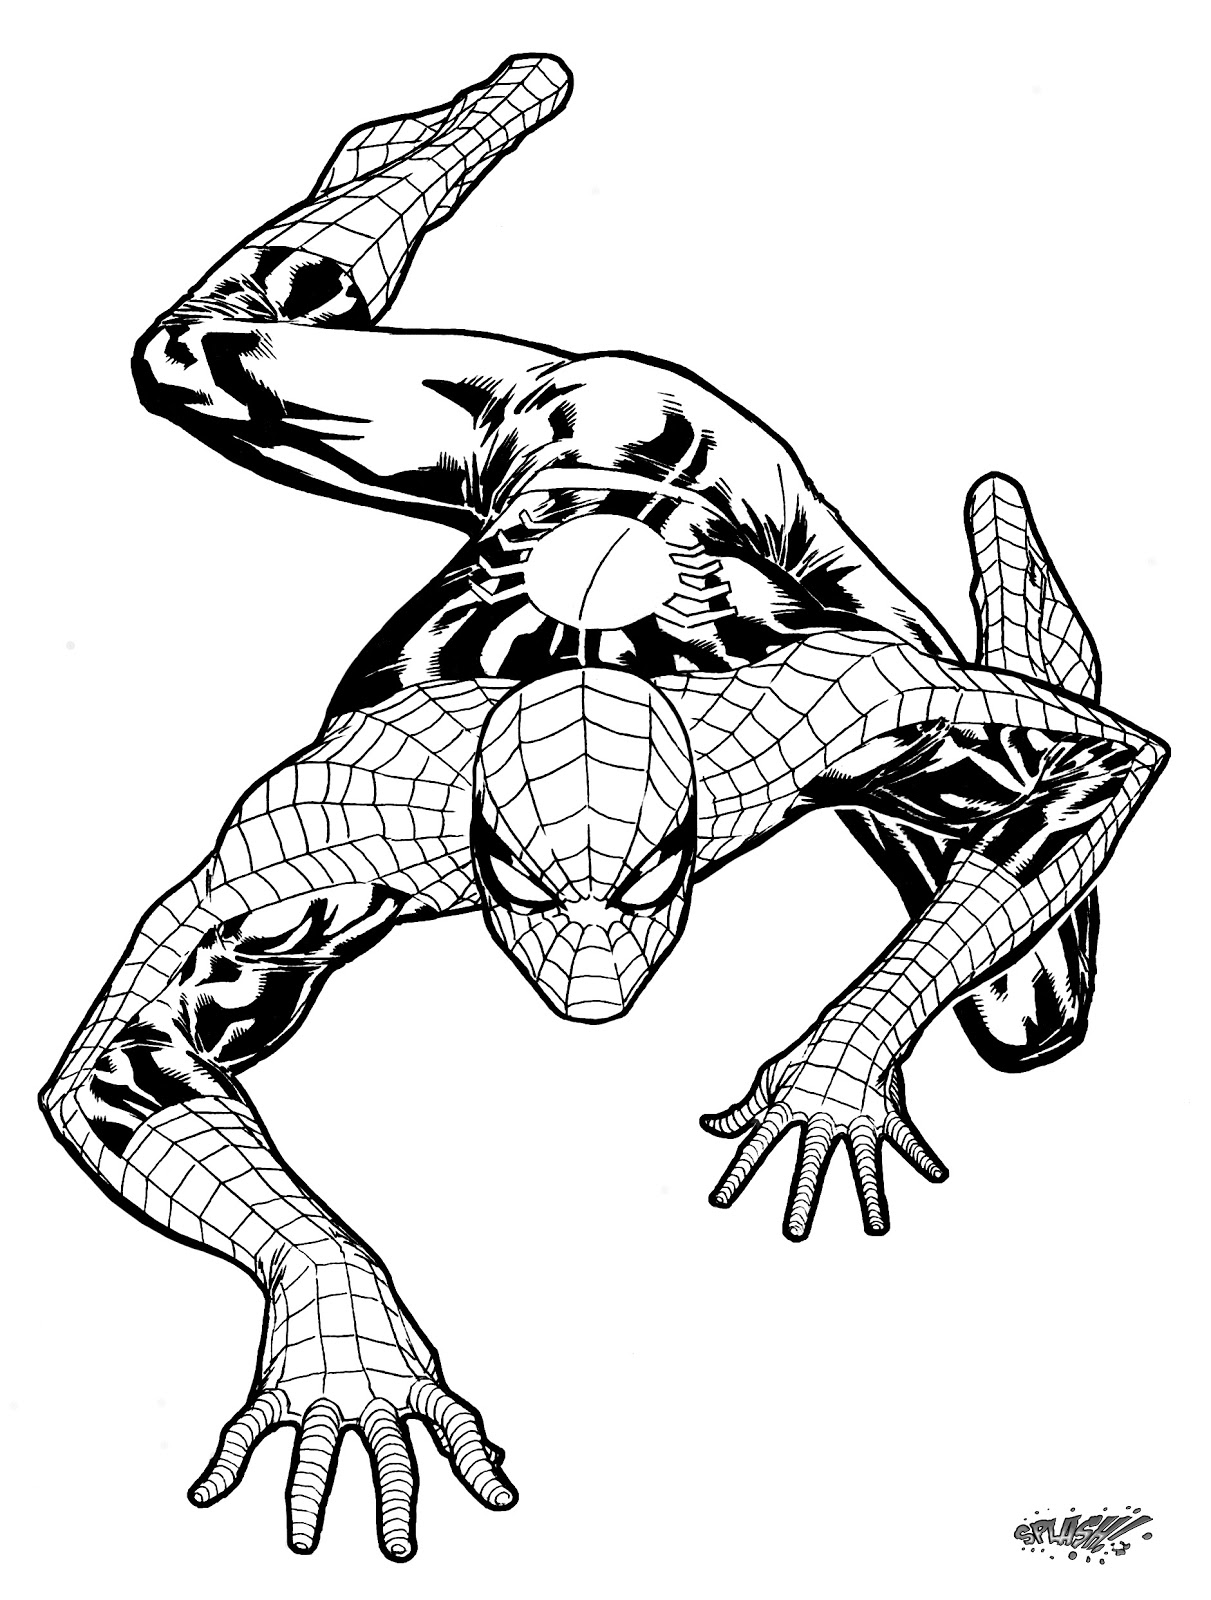 MartyCatherine Assignment 5 Colored Line Art Spiderman